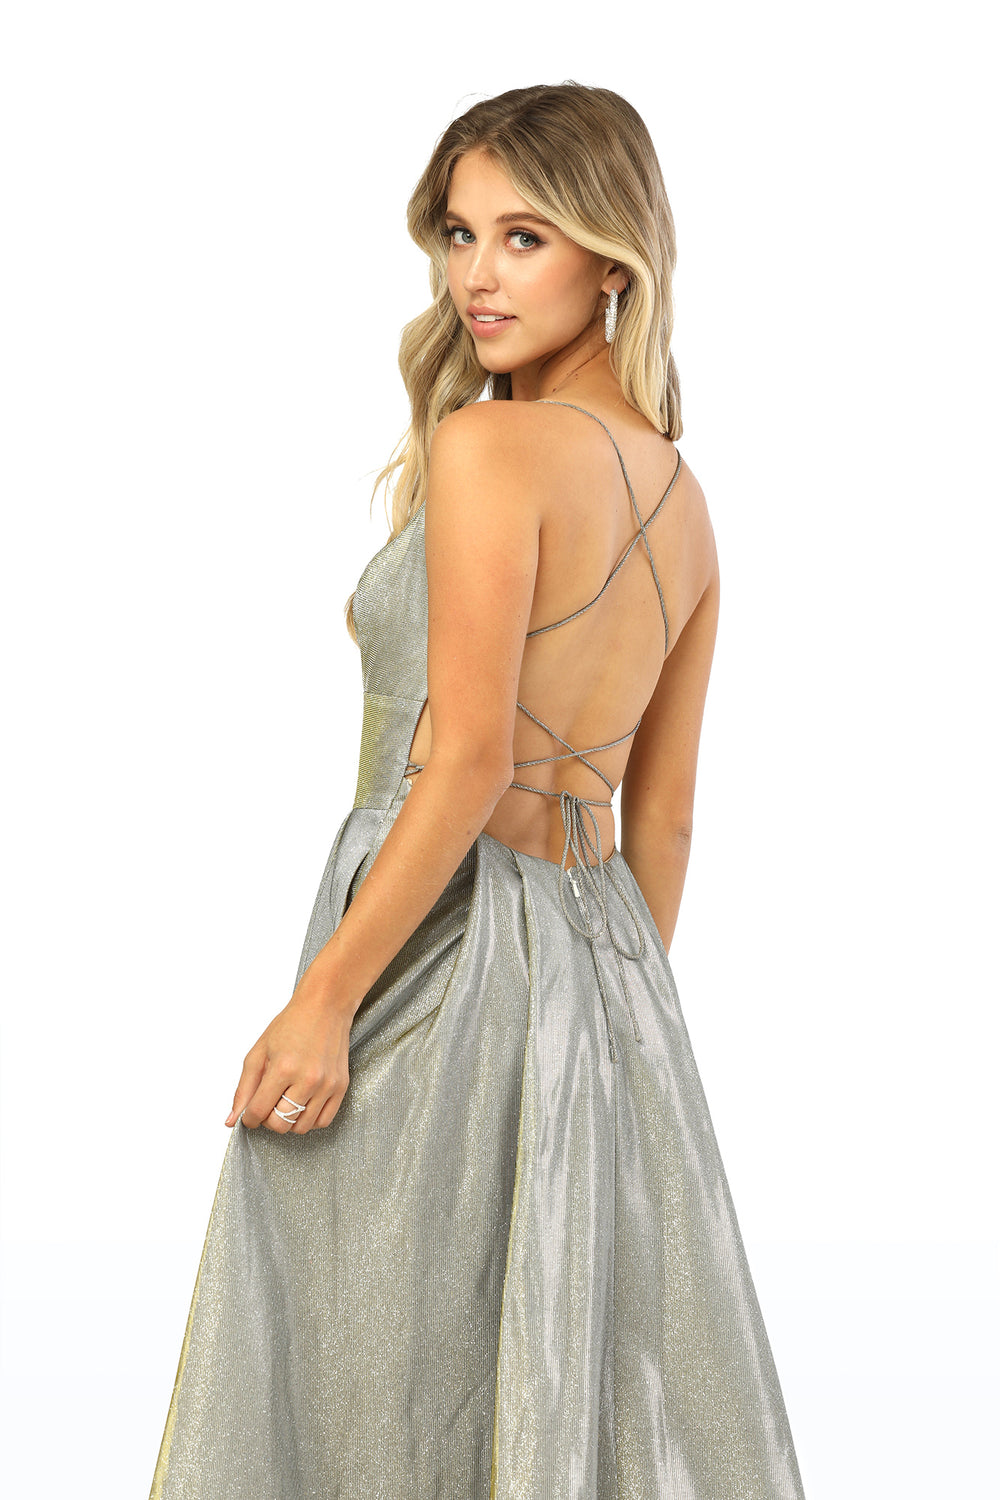 Square-Neck With Open Back Glitter Fabric_C241 BY NARIANNA